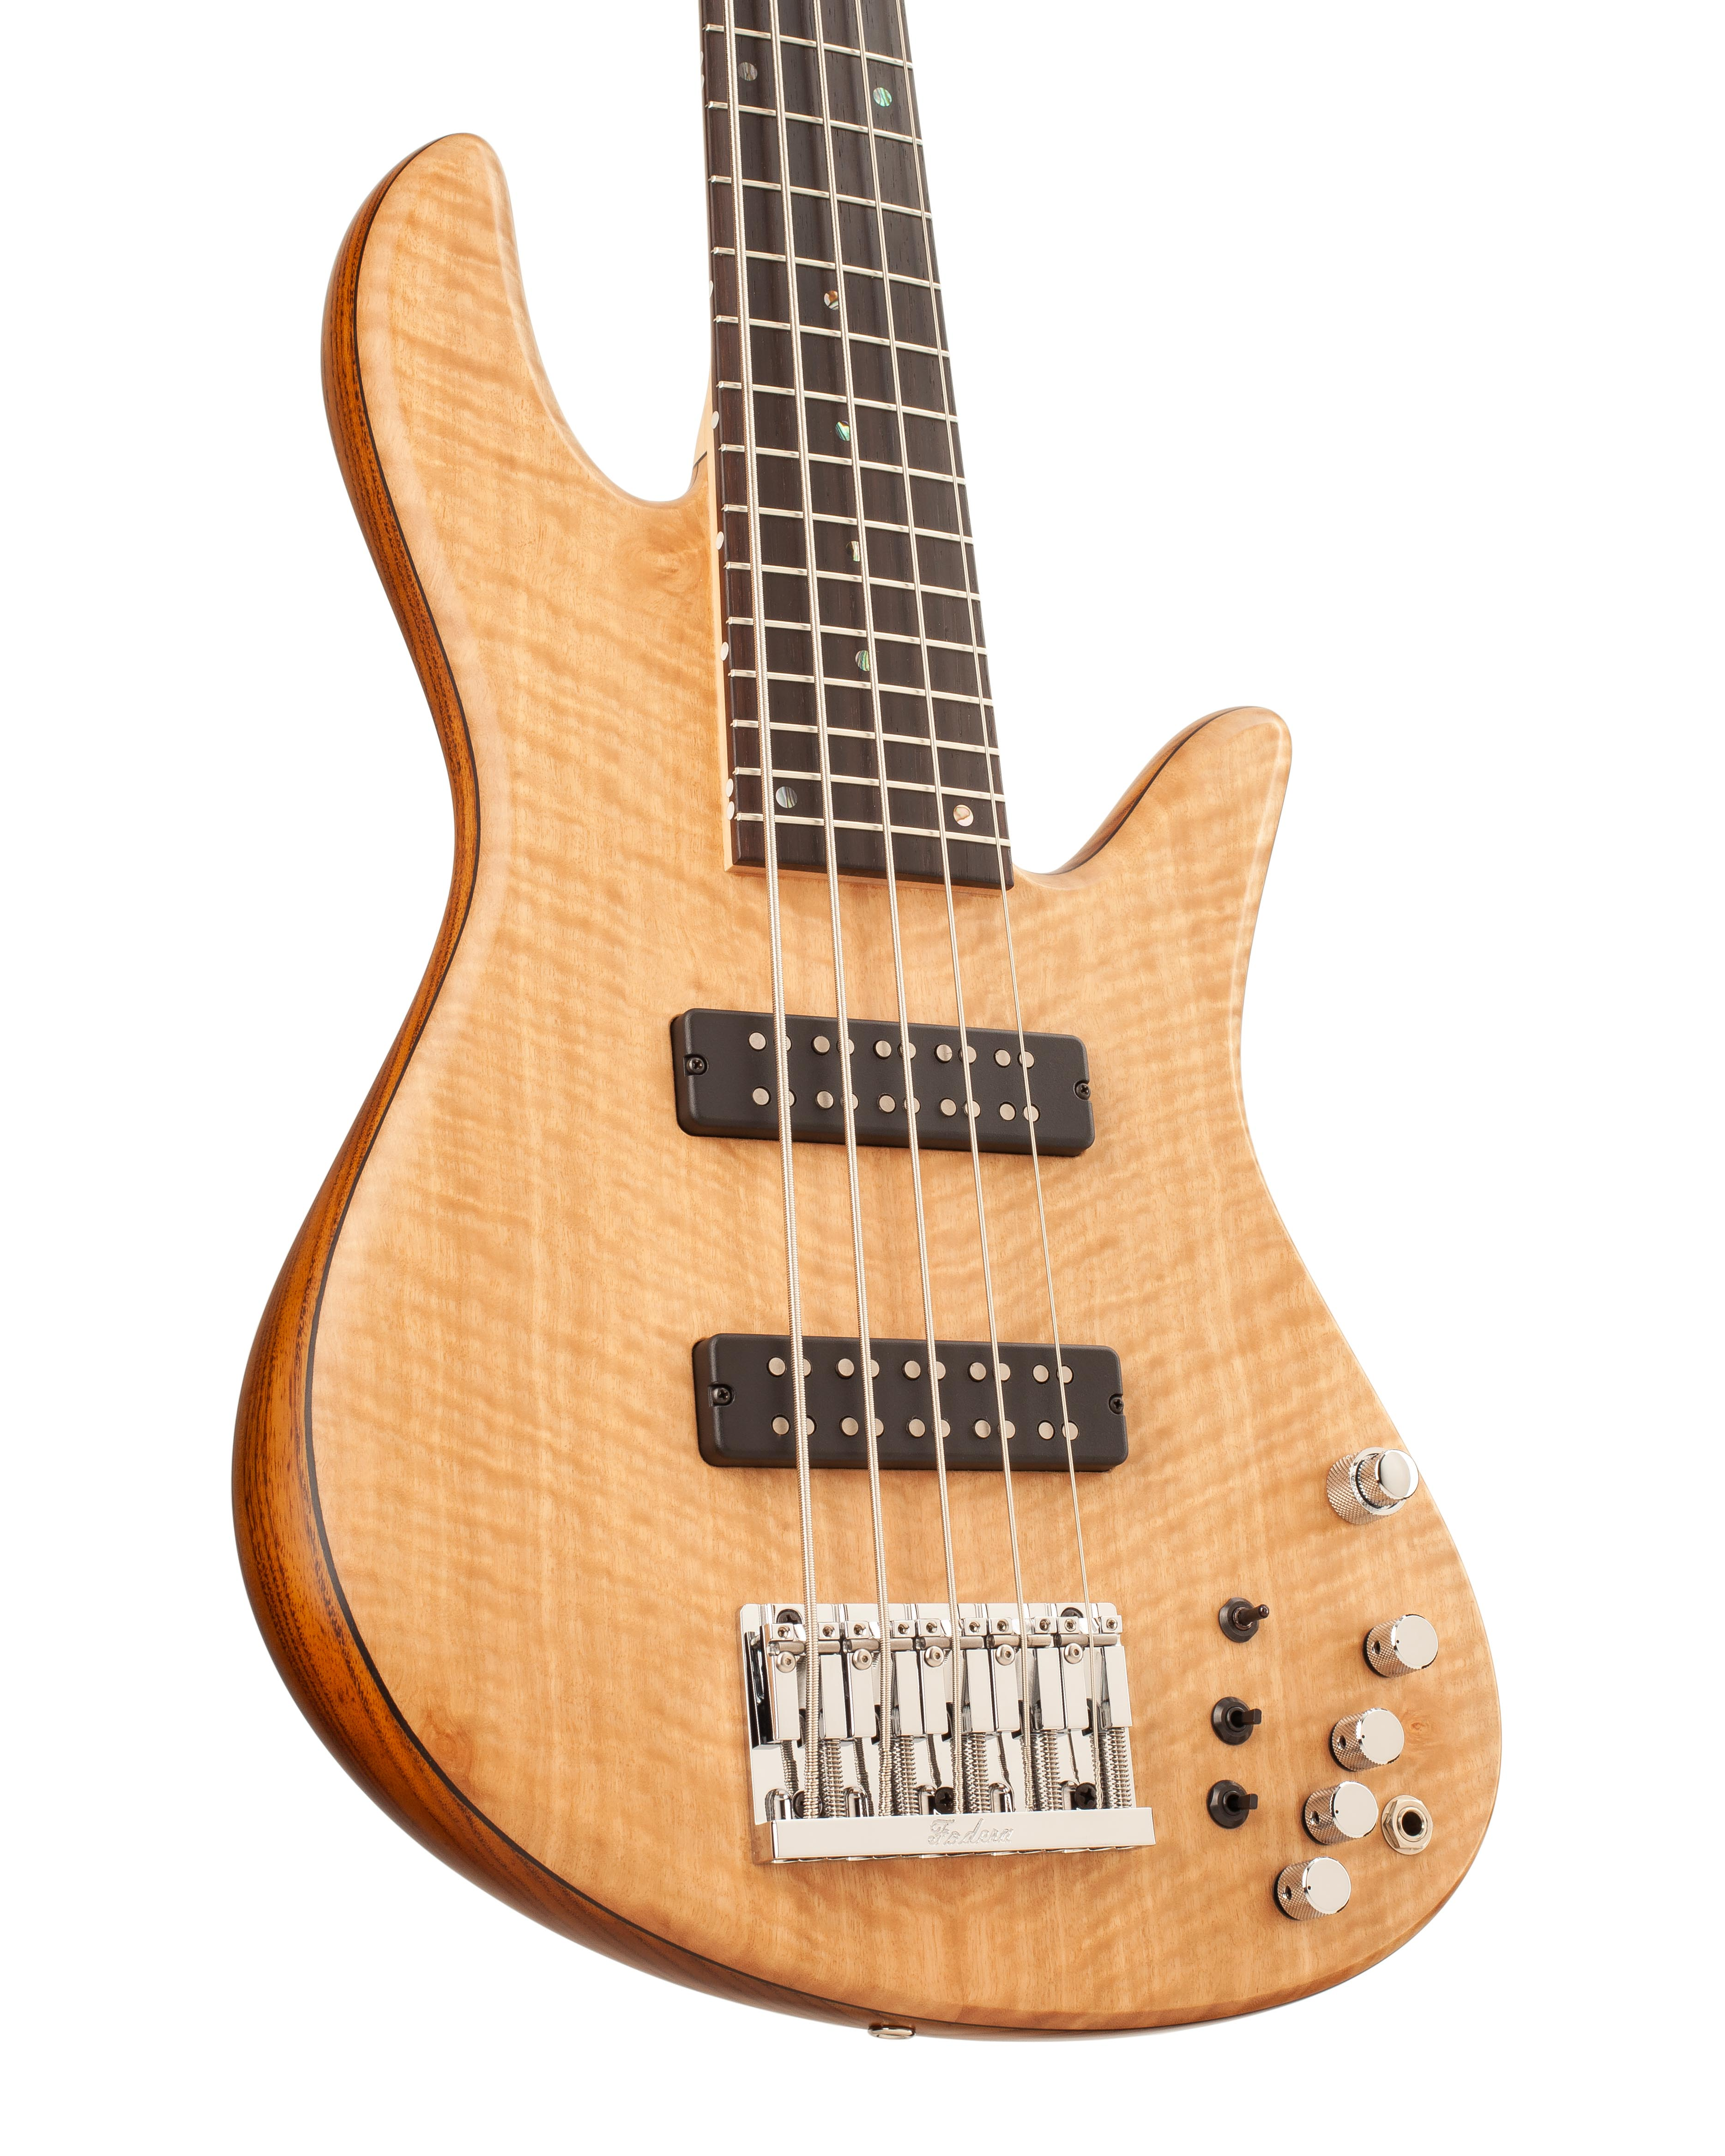 Emperor Custom Bass Guitar With Light Brown Topwood